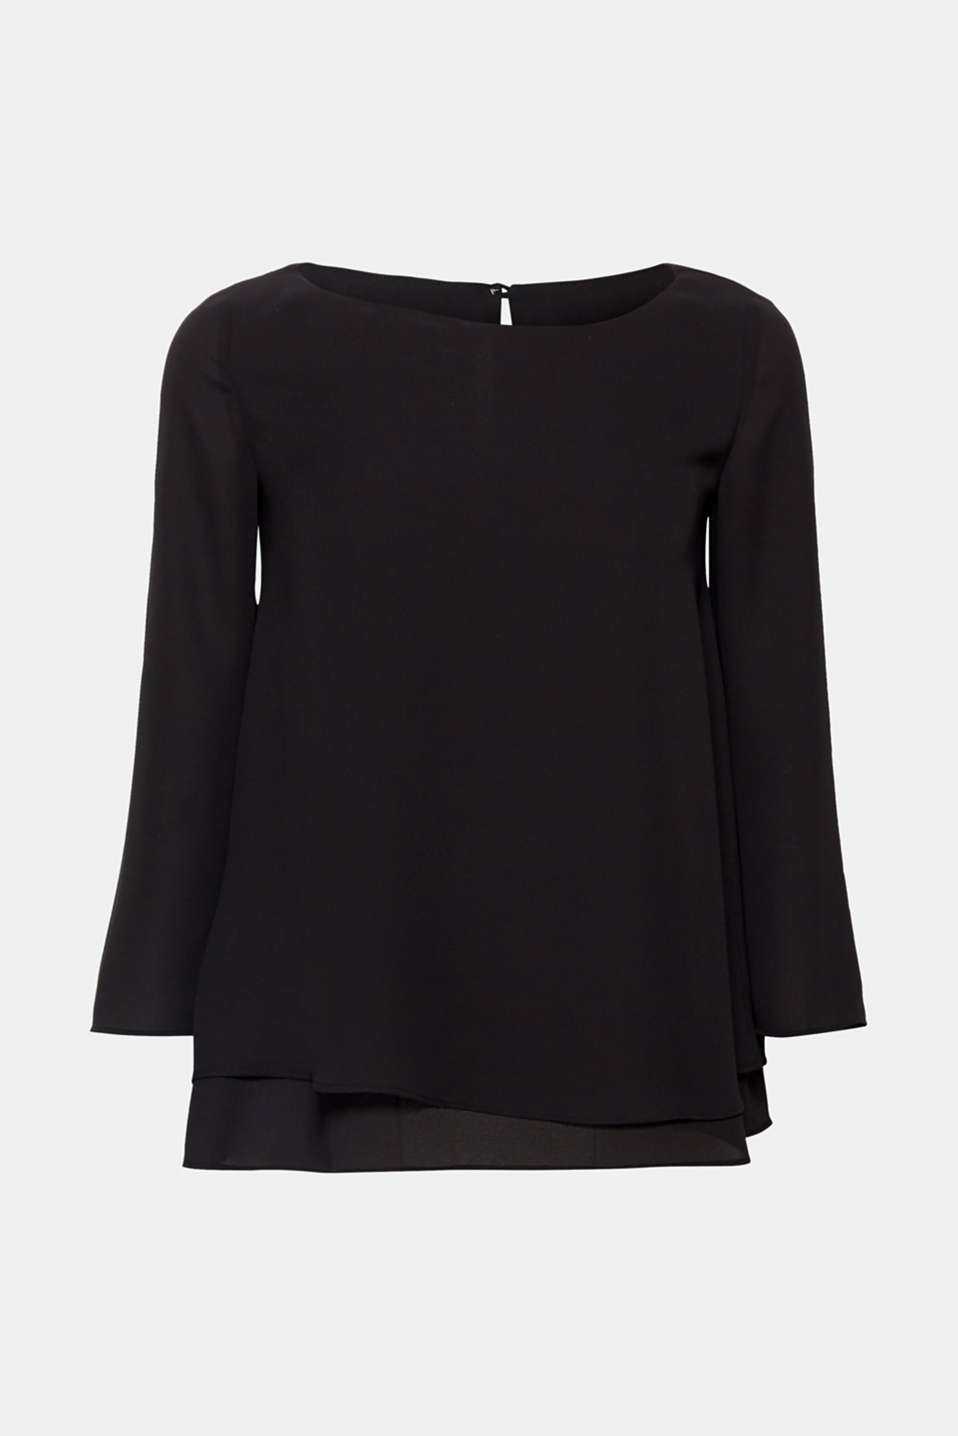 Flowing crêpe blouse with a layered effect, BLACK, detail image number 7